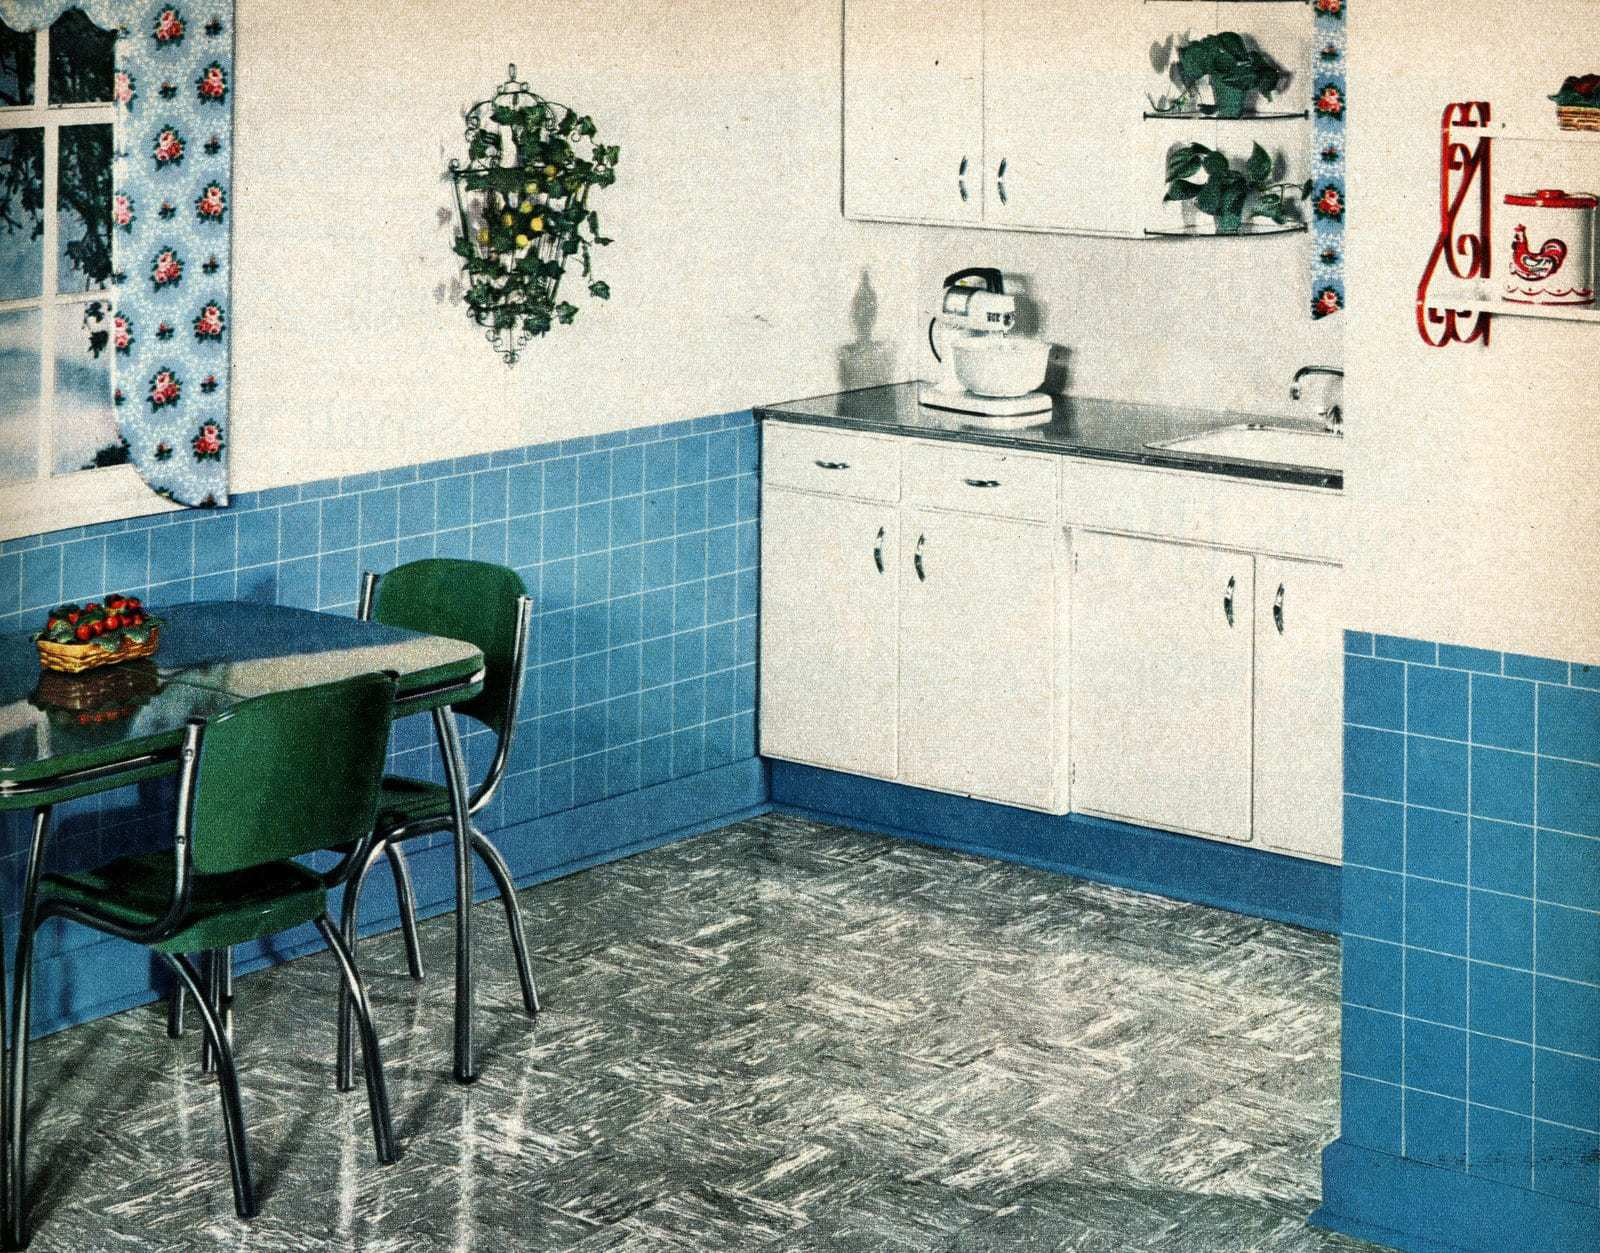 Retro fifties flooring - Kitchen in blue in gray from 1950